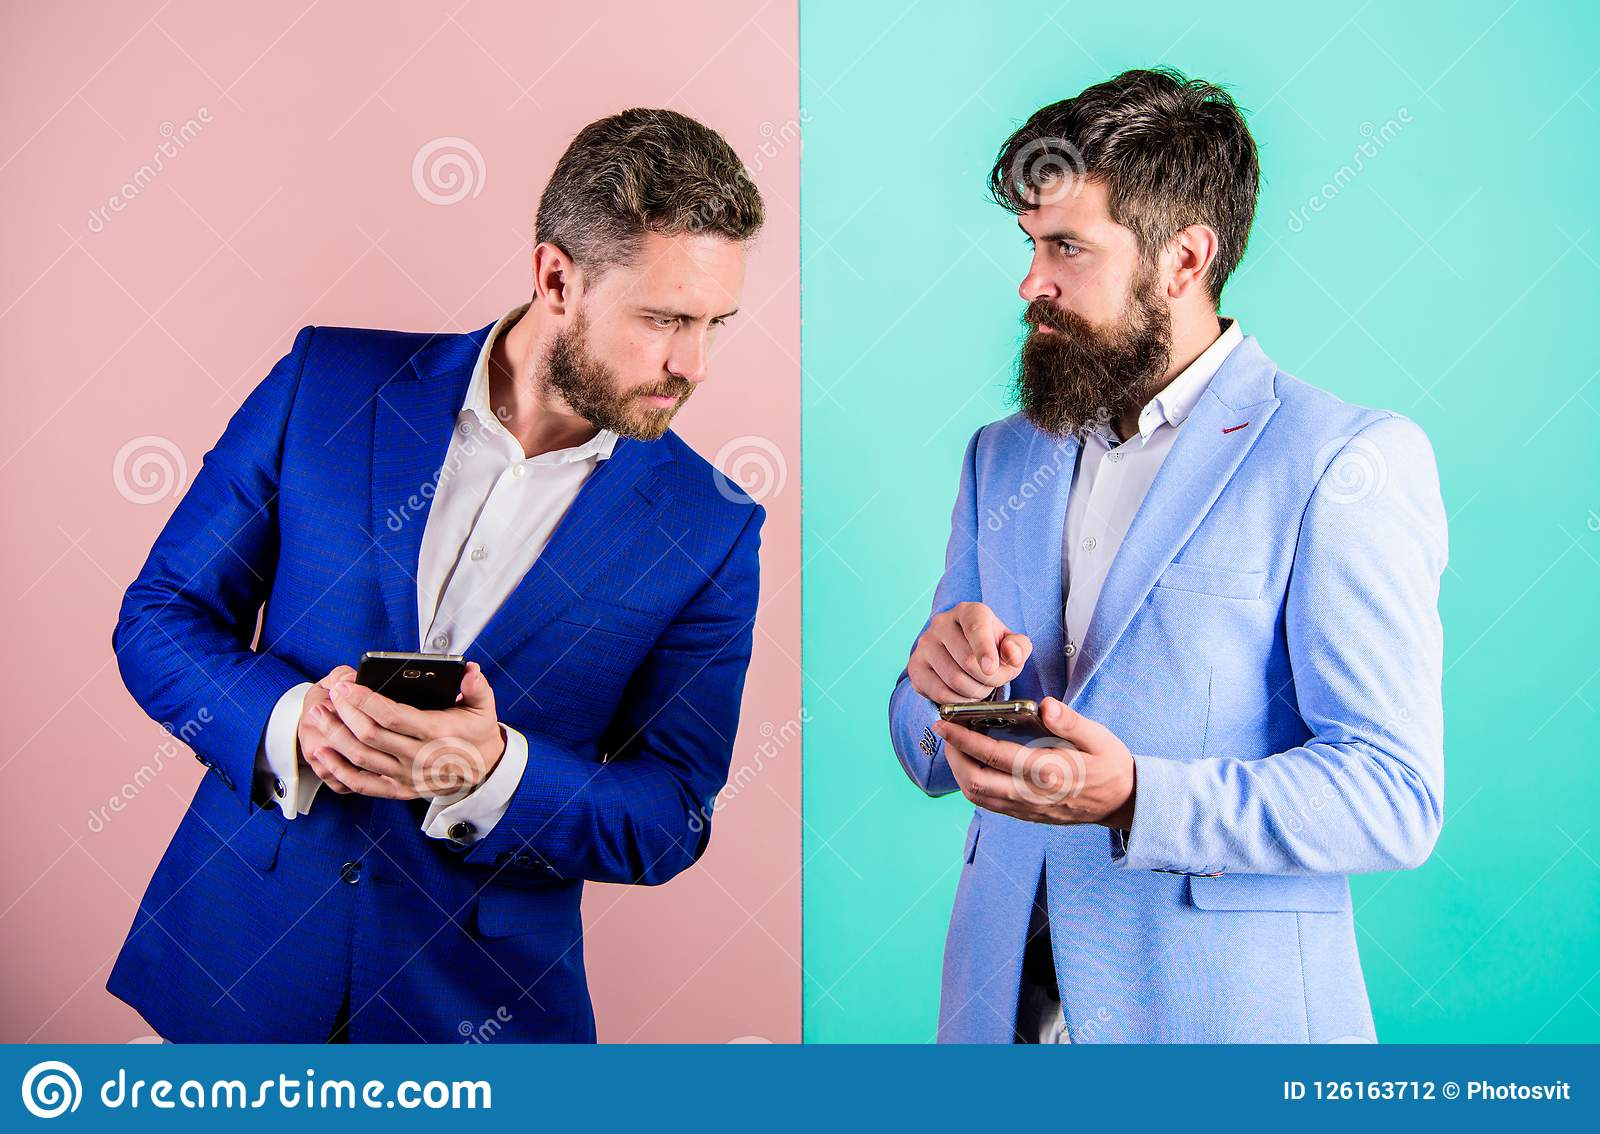 Always online concept. Social media marketing. Nowadays everyone needs modern gadget smartphone with online access